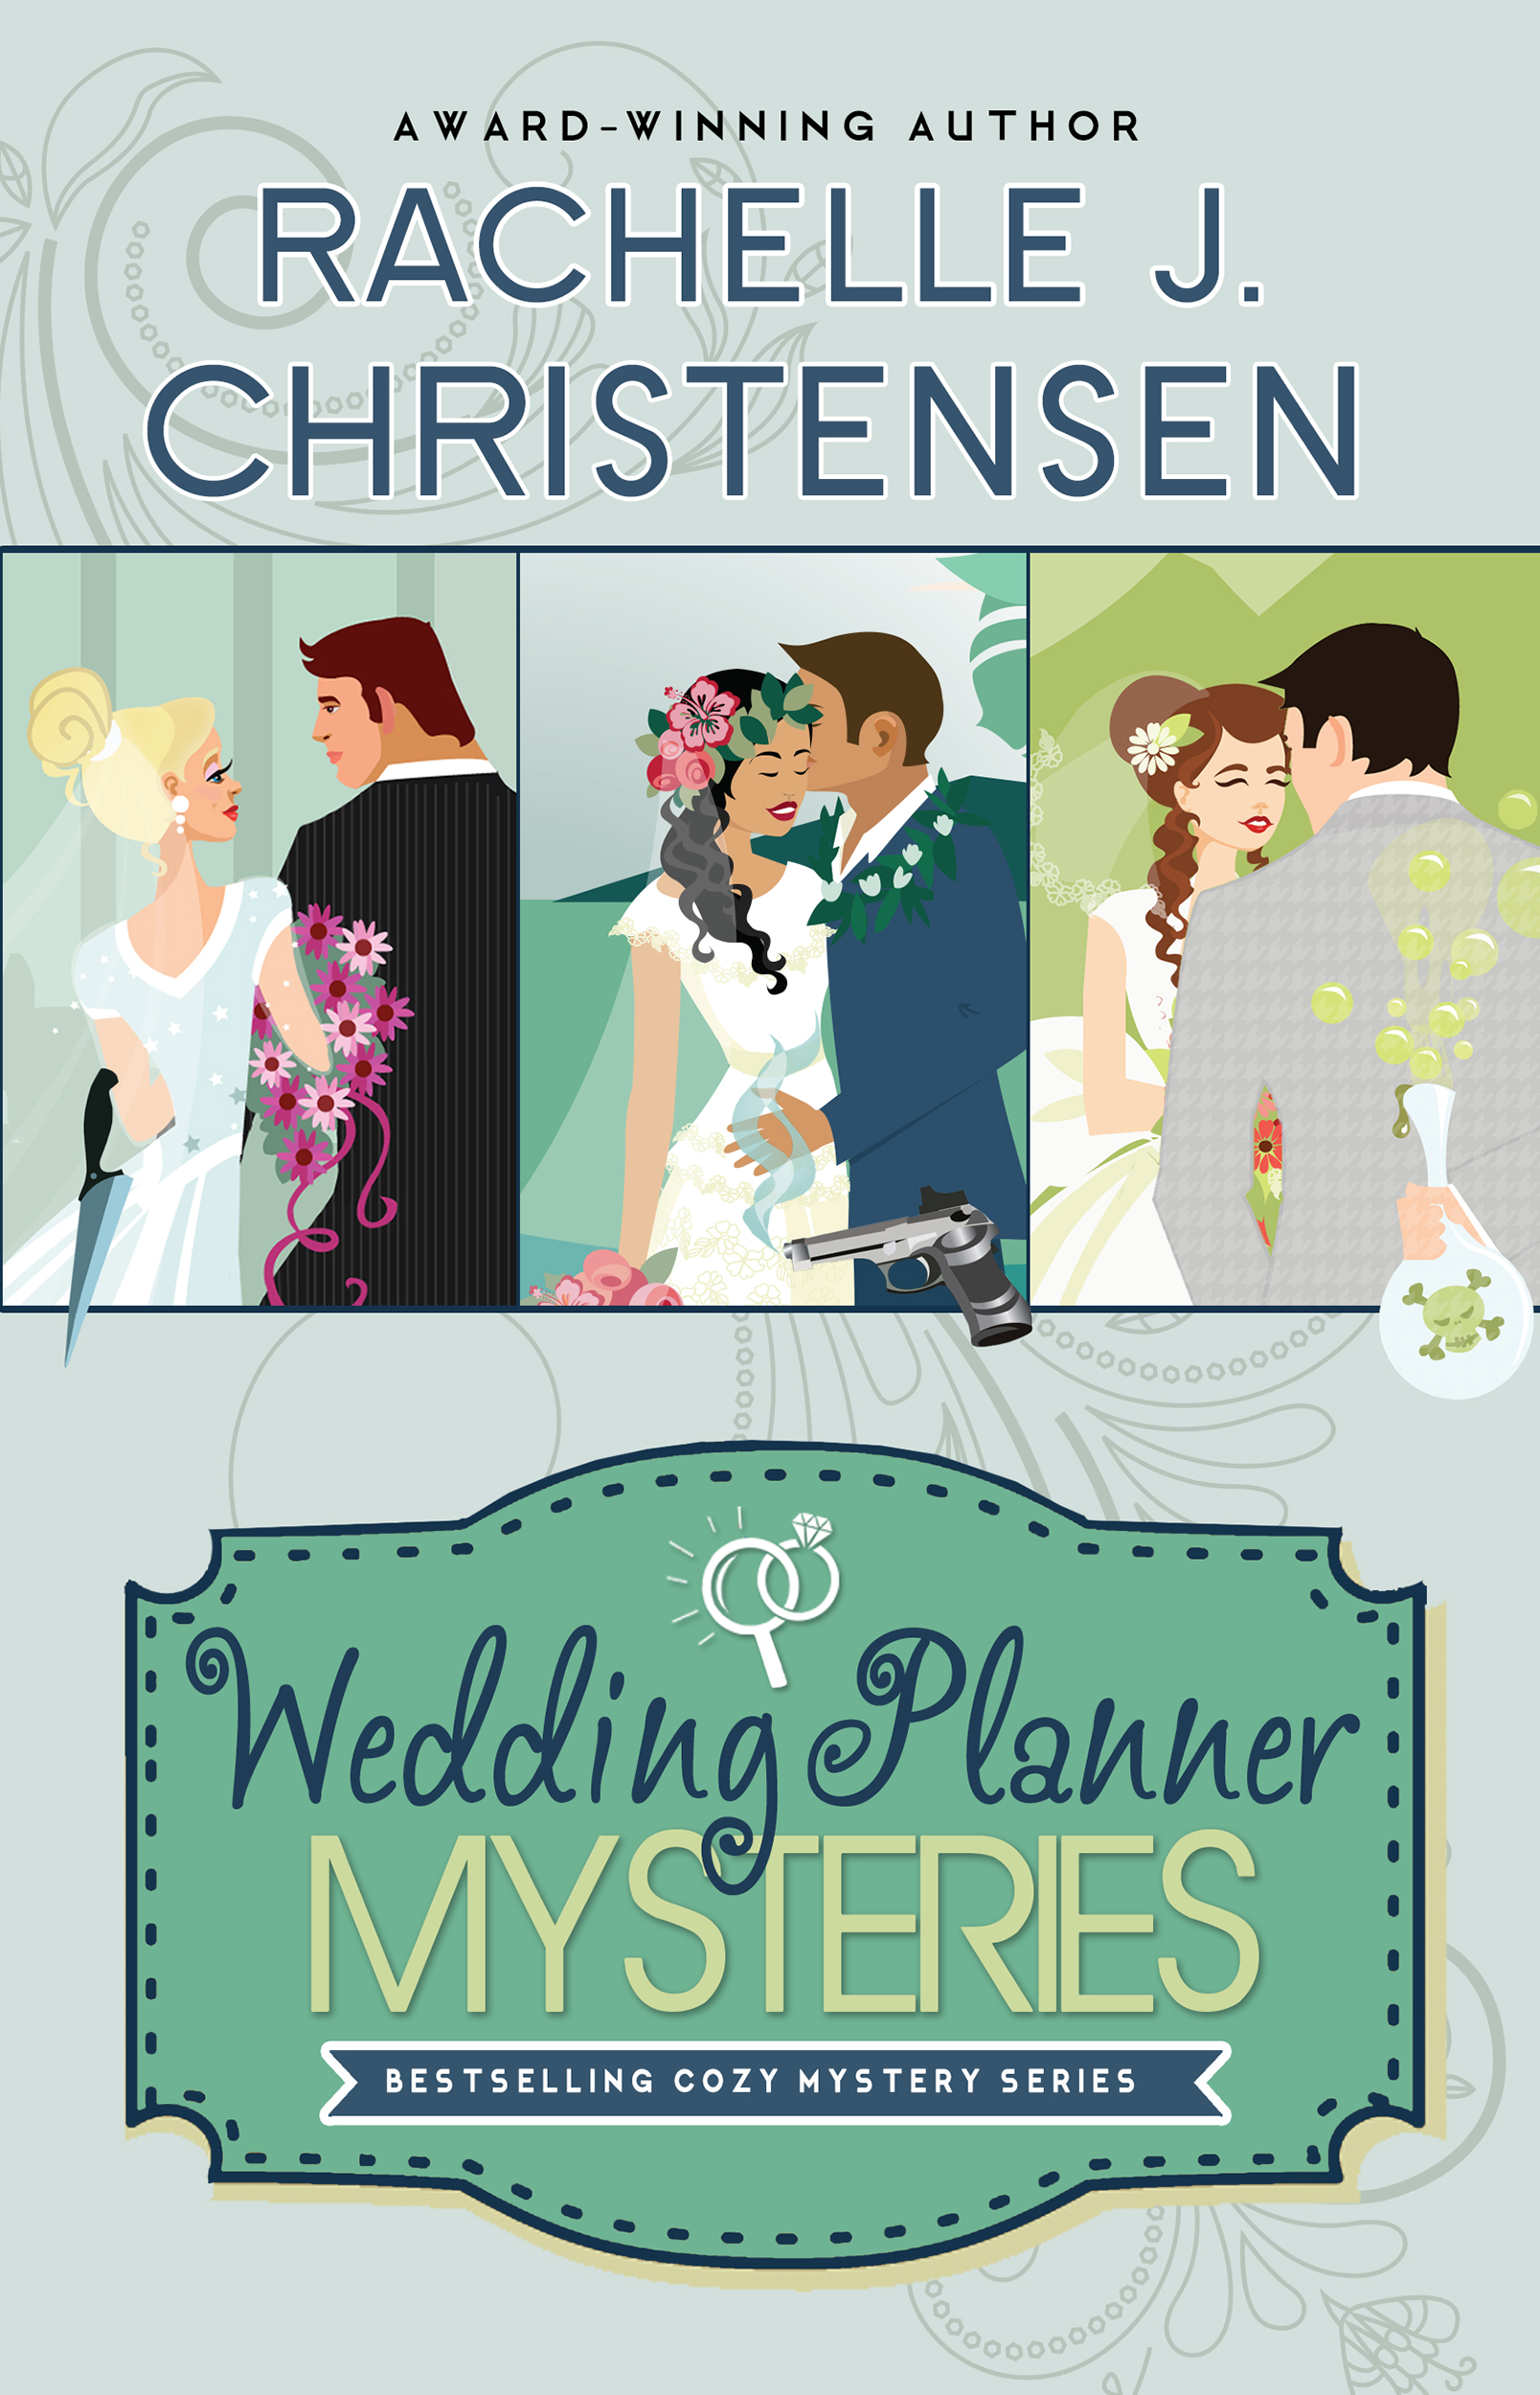 WEDDING PLANNER MYSTERY SERIES - Front Cover (for Amazon)